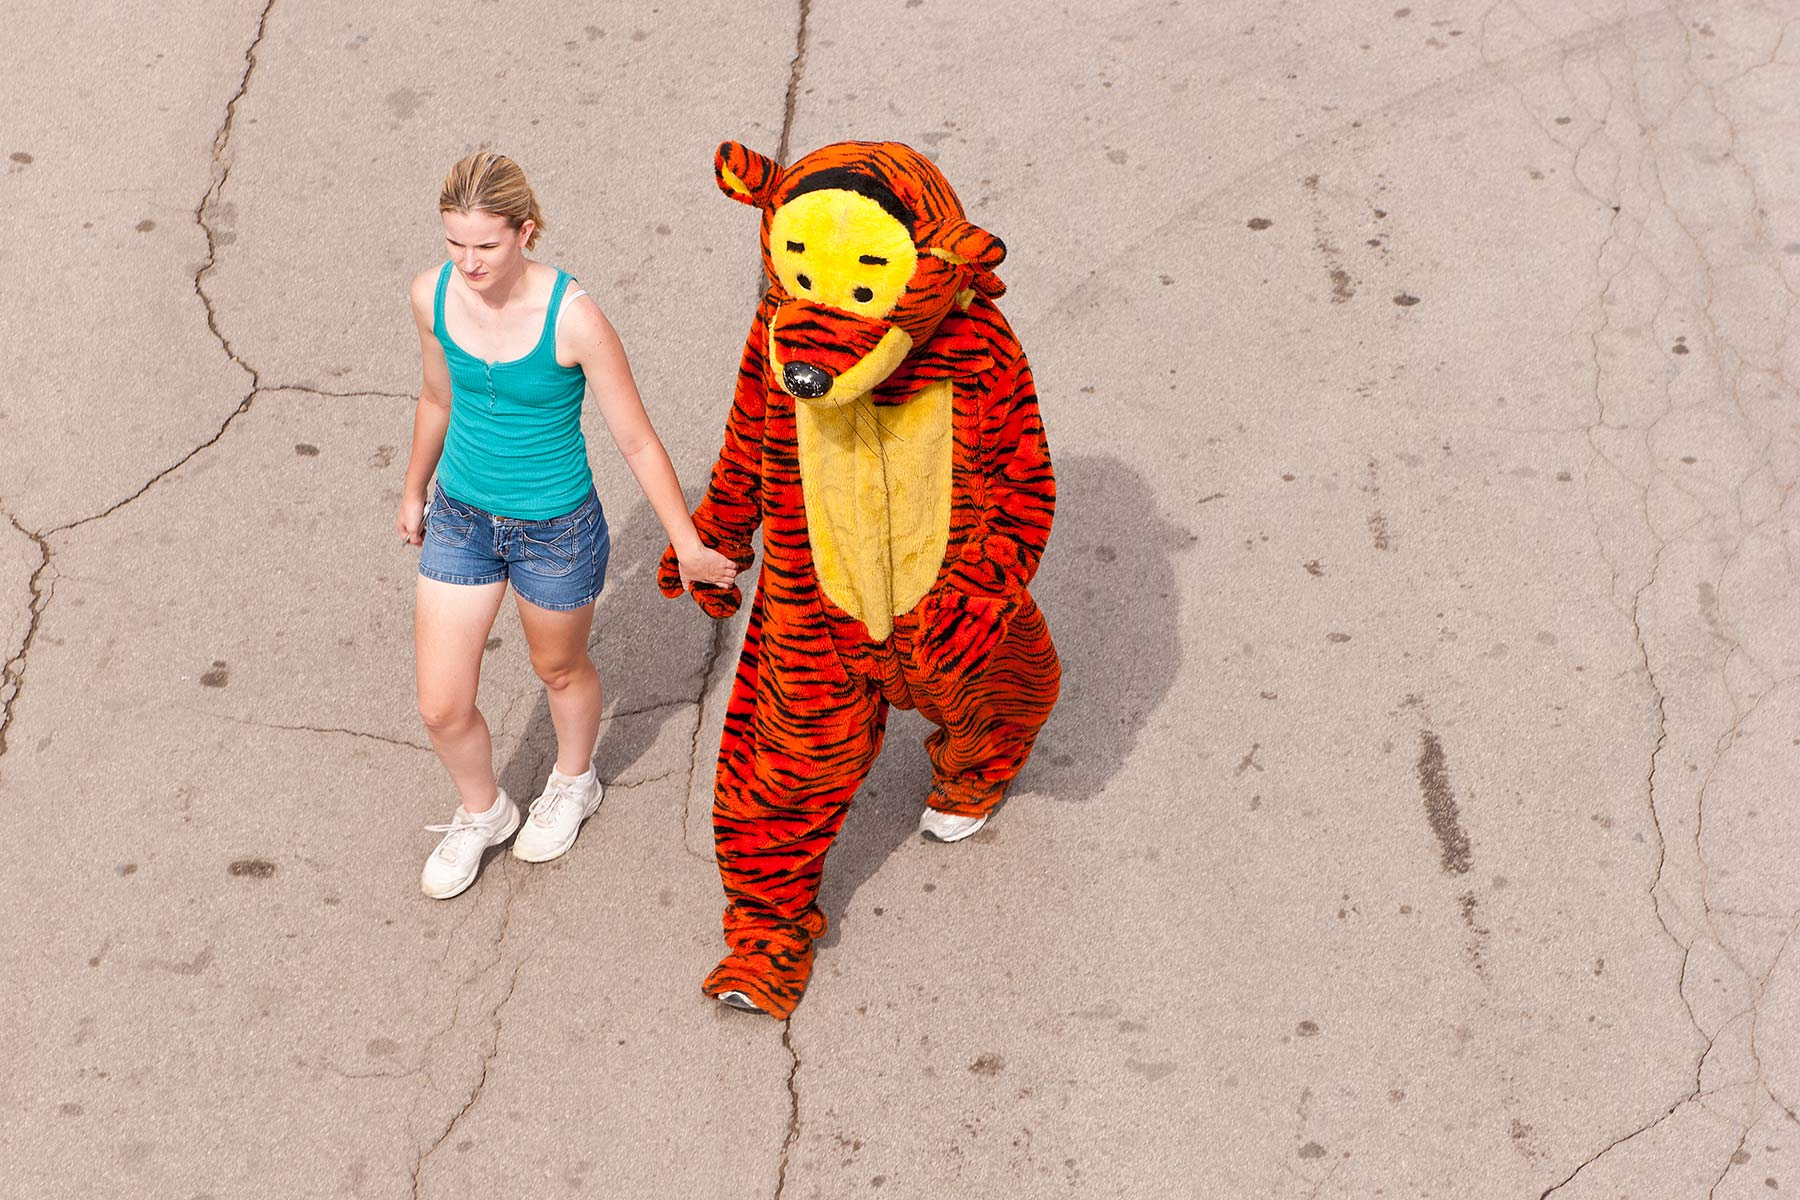 0-tony-the-tiger-at-the-state-fair